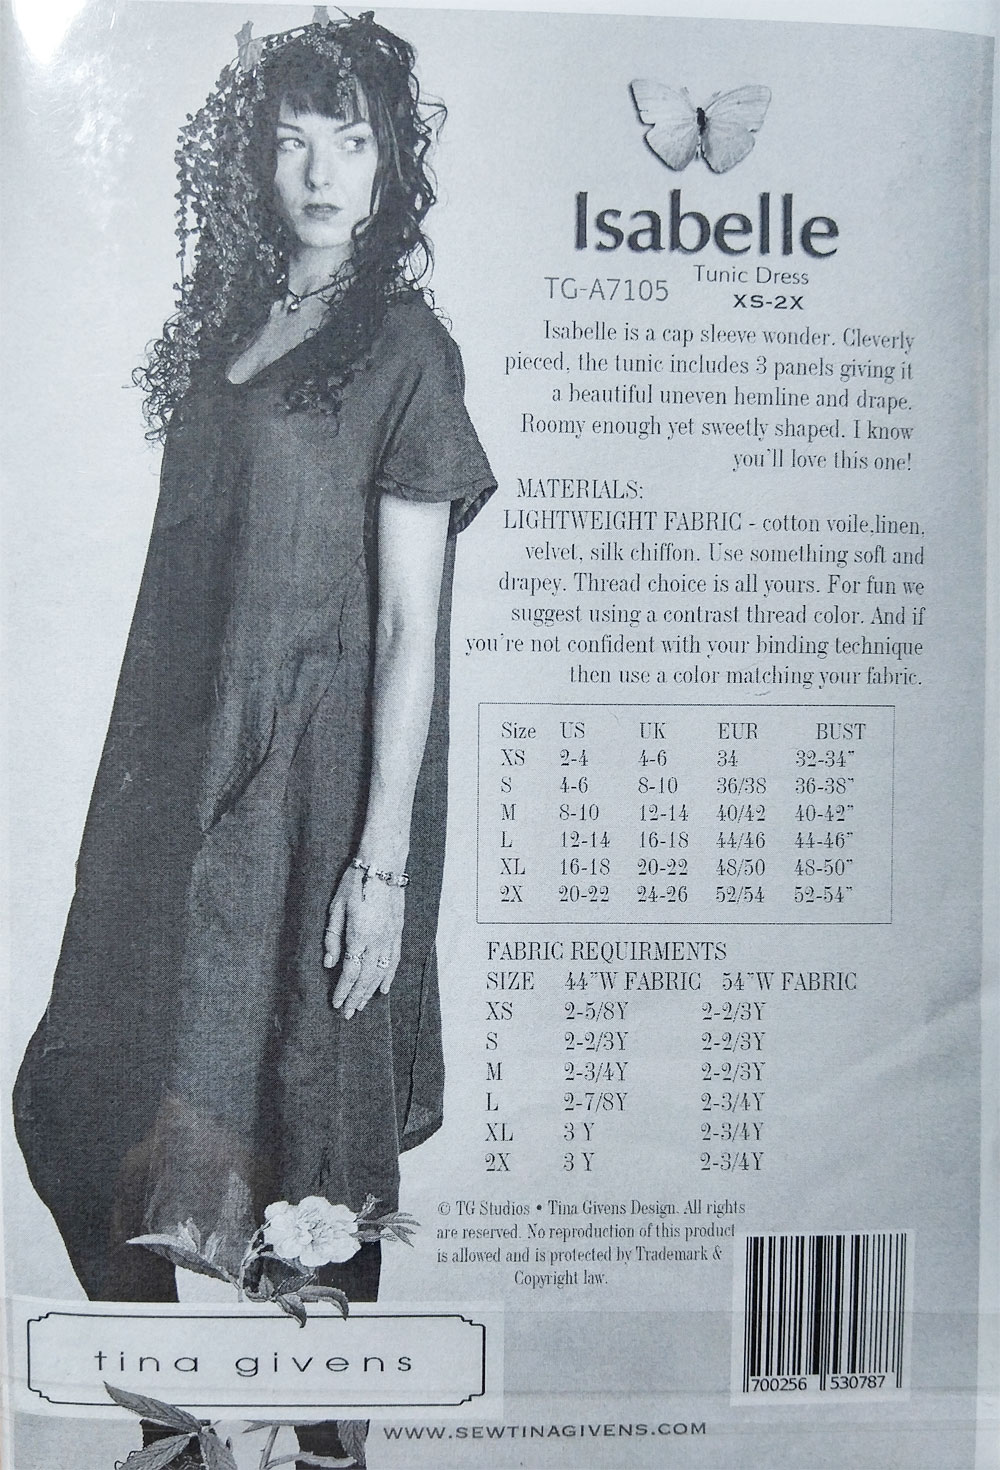 Isabelle-Tunic-Dress-sewing-pattern-from-Tina-Givens-back